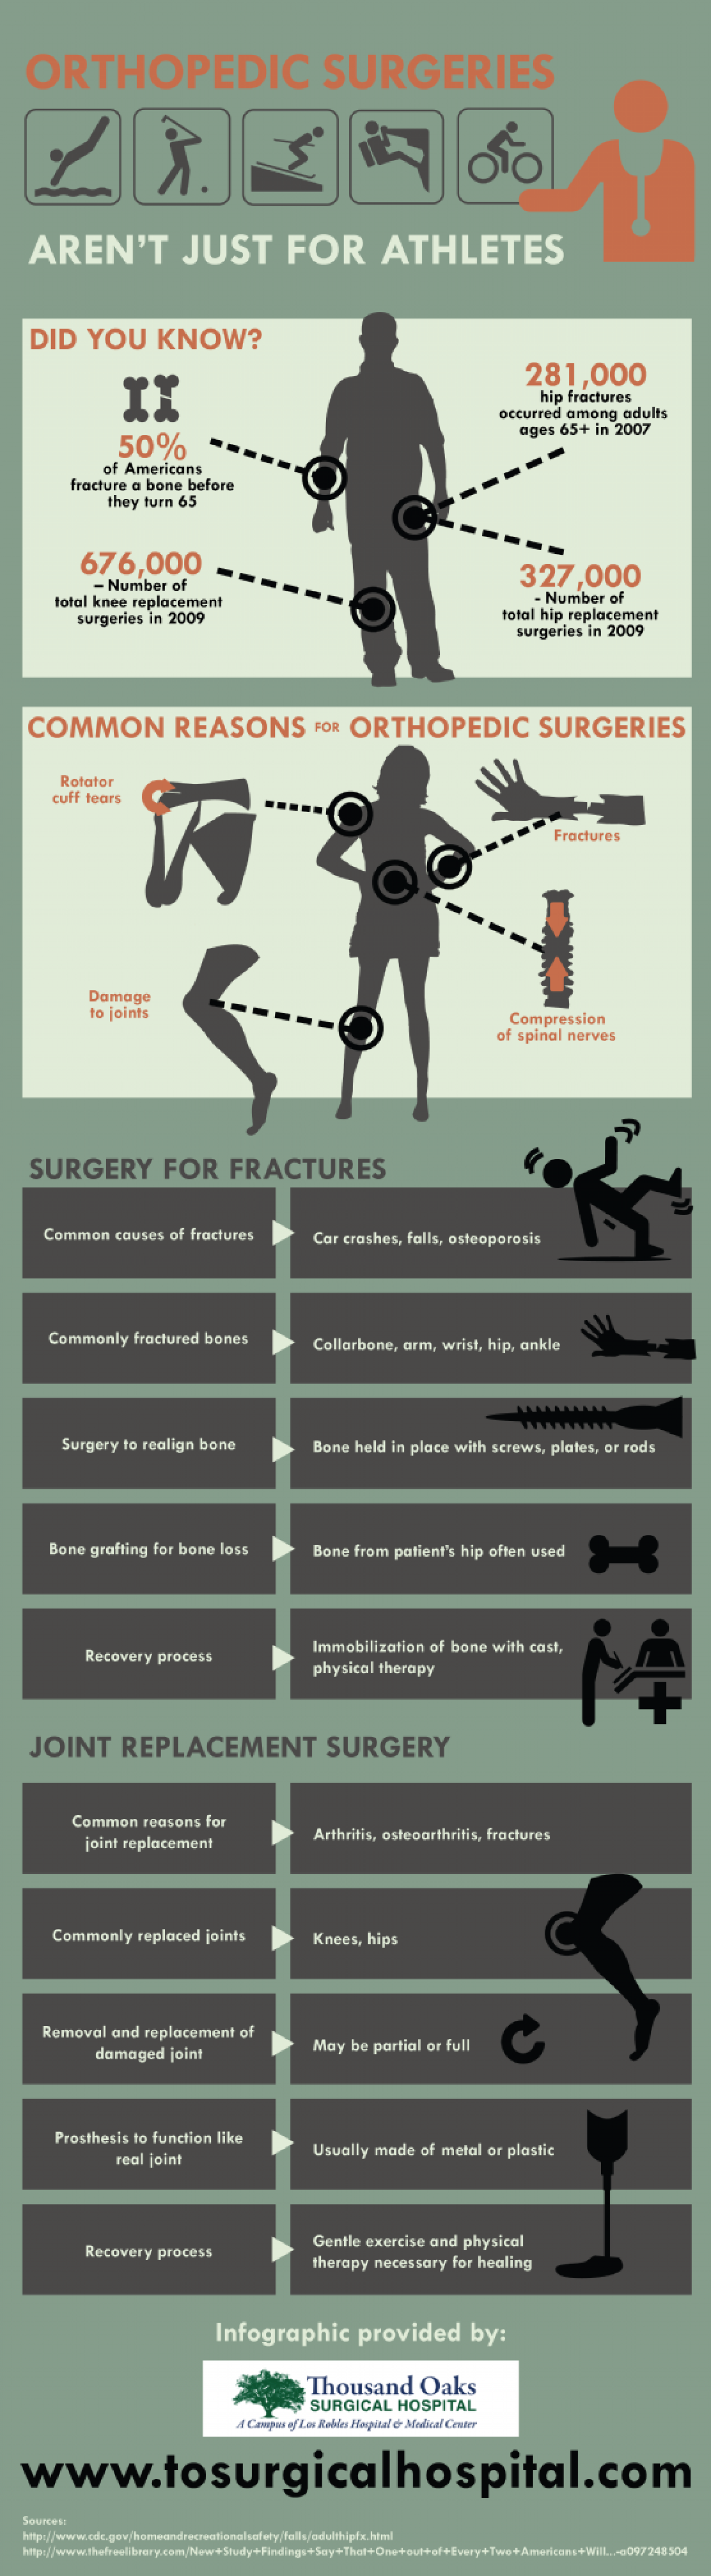 Orthopedic Surgeries Aren't Just for Athletes Infographic